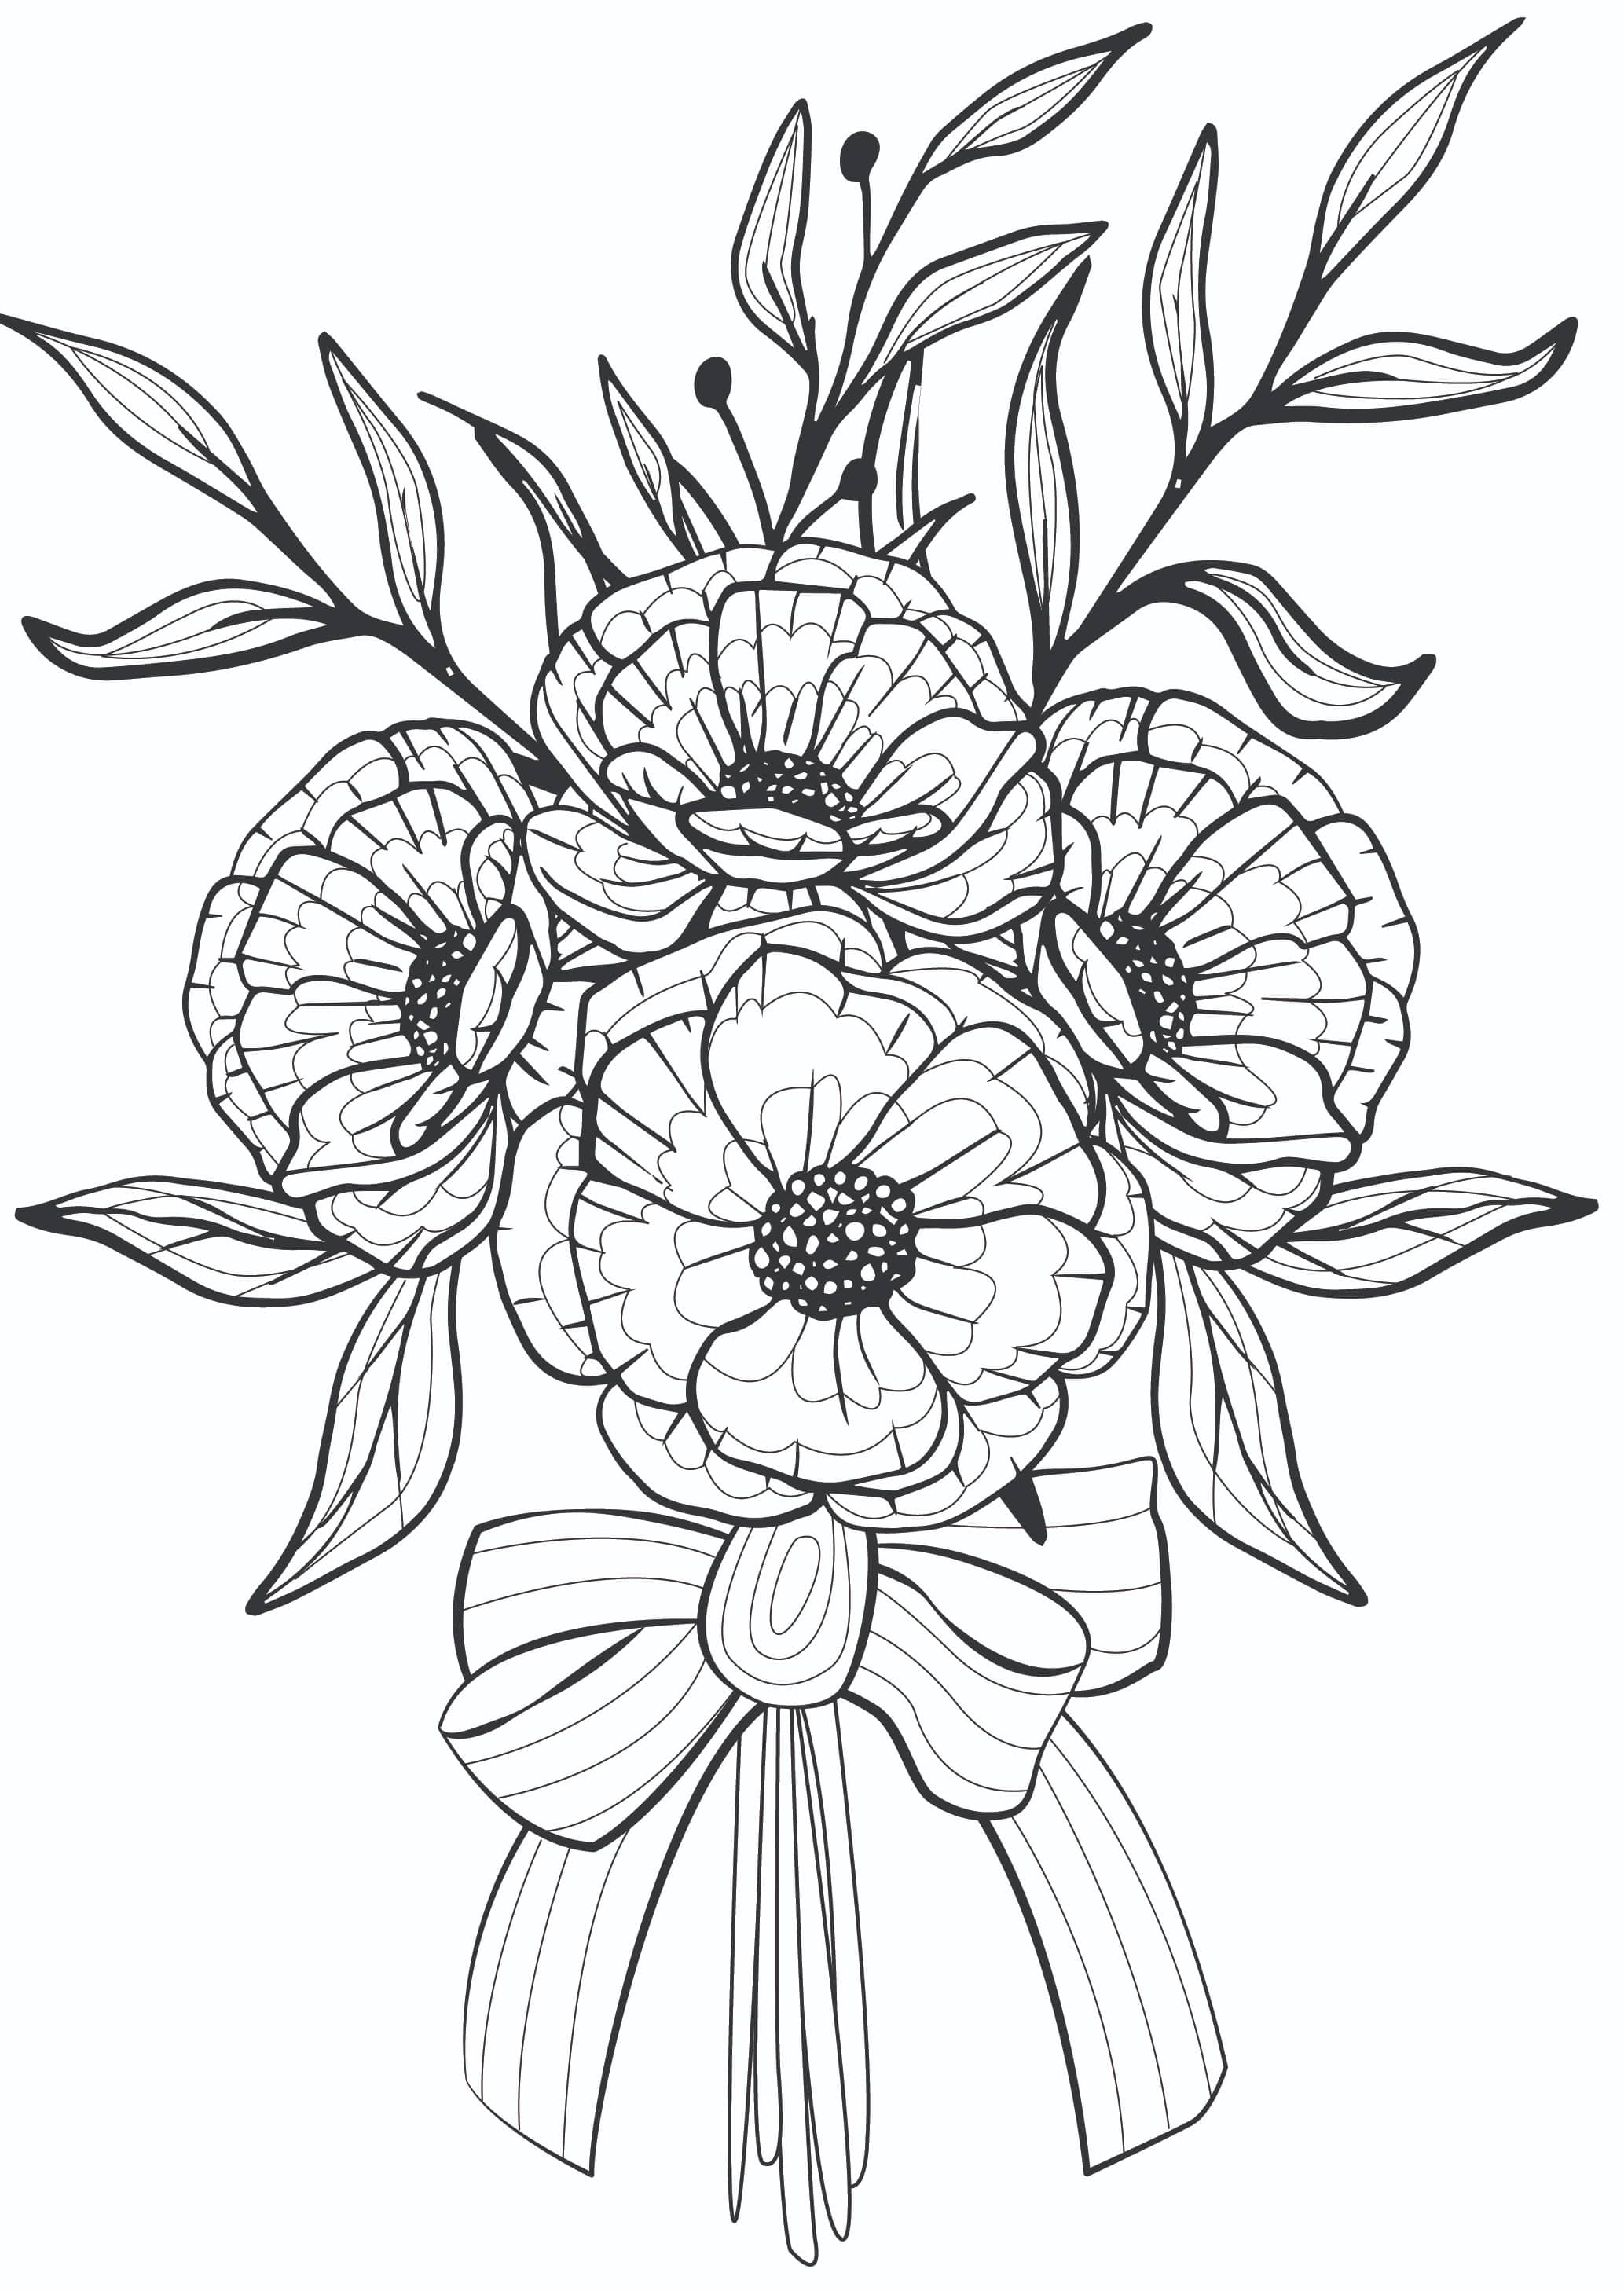 Printable flower coloring pages for adults, like this bouquet of flowers, can be used to add color to your every day!